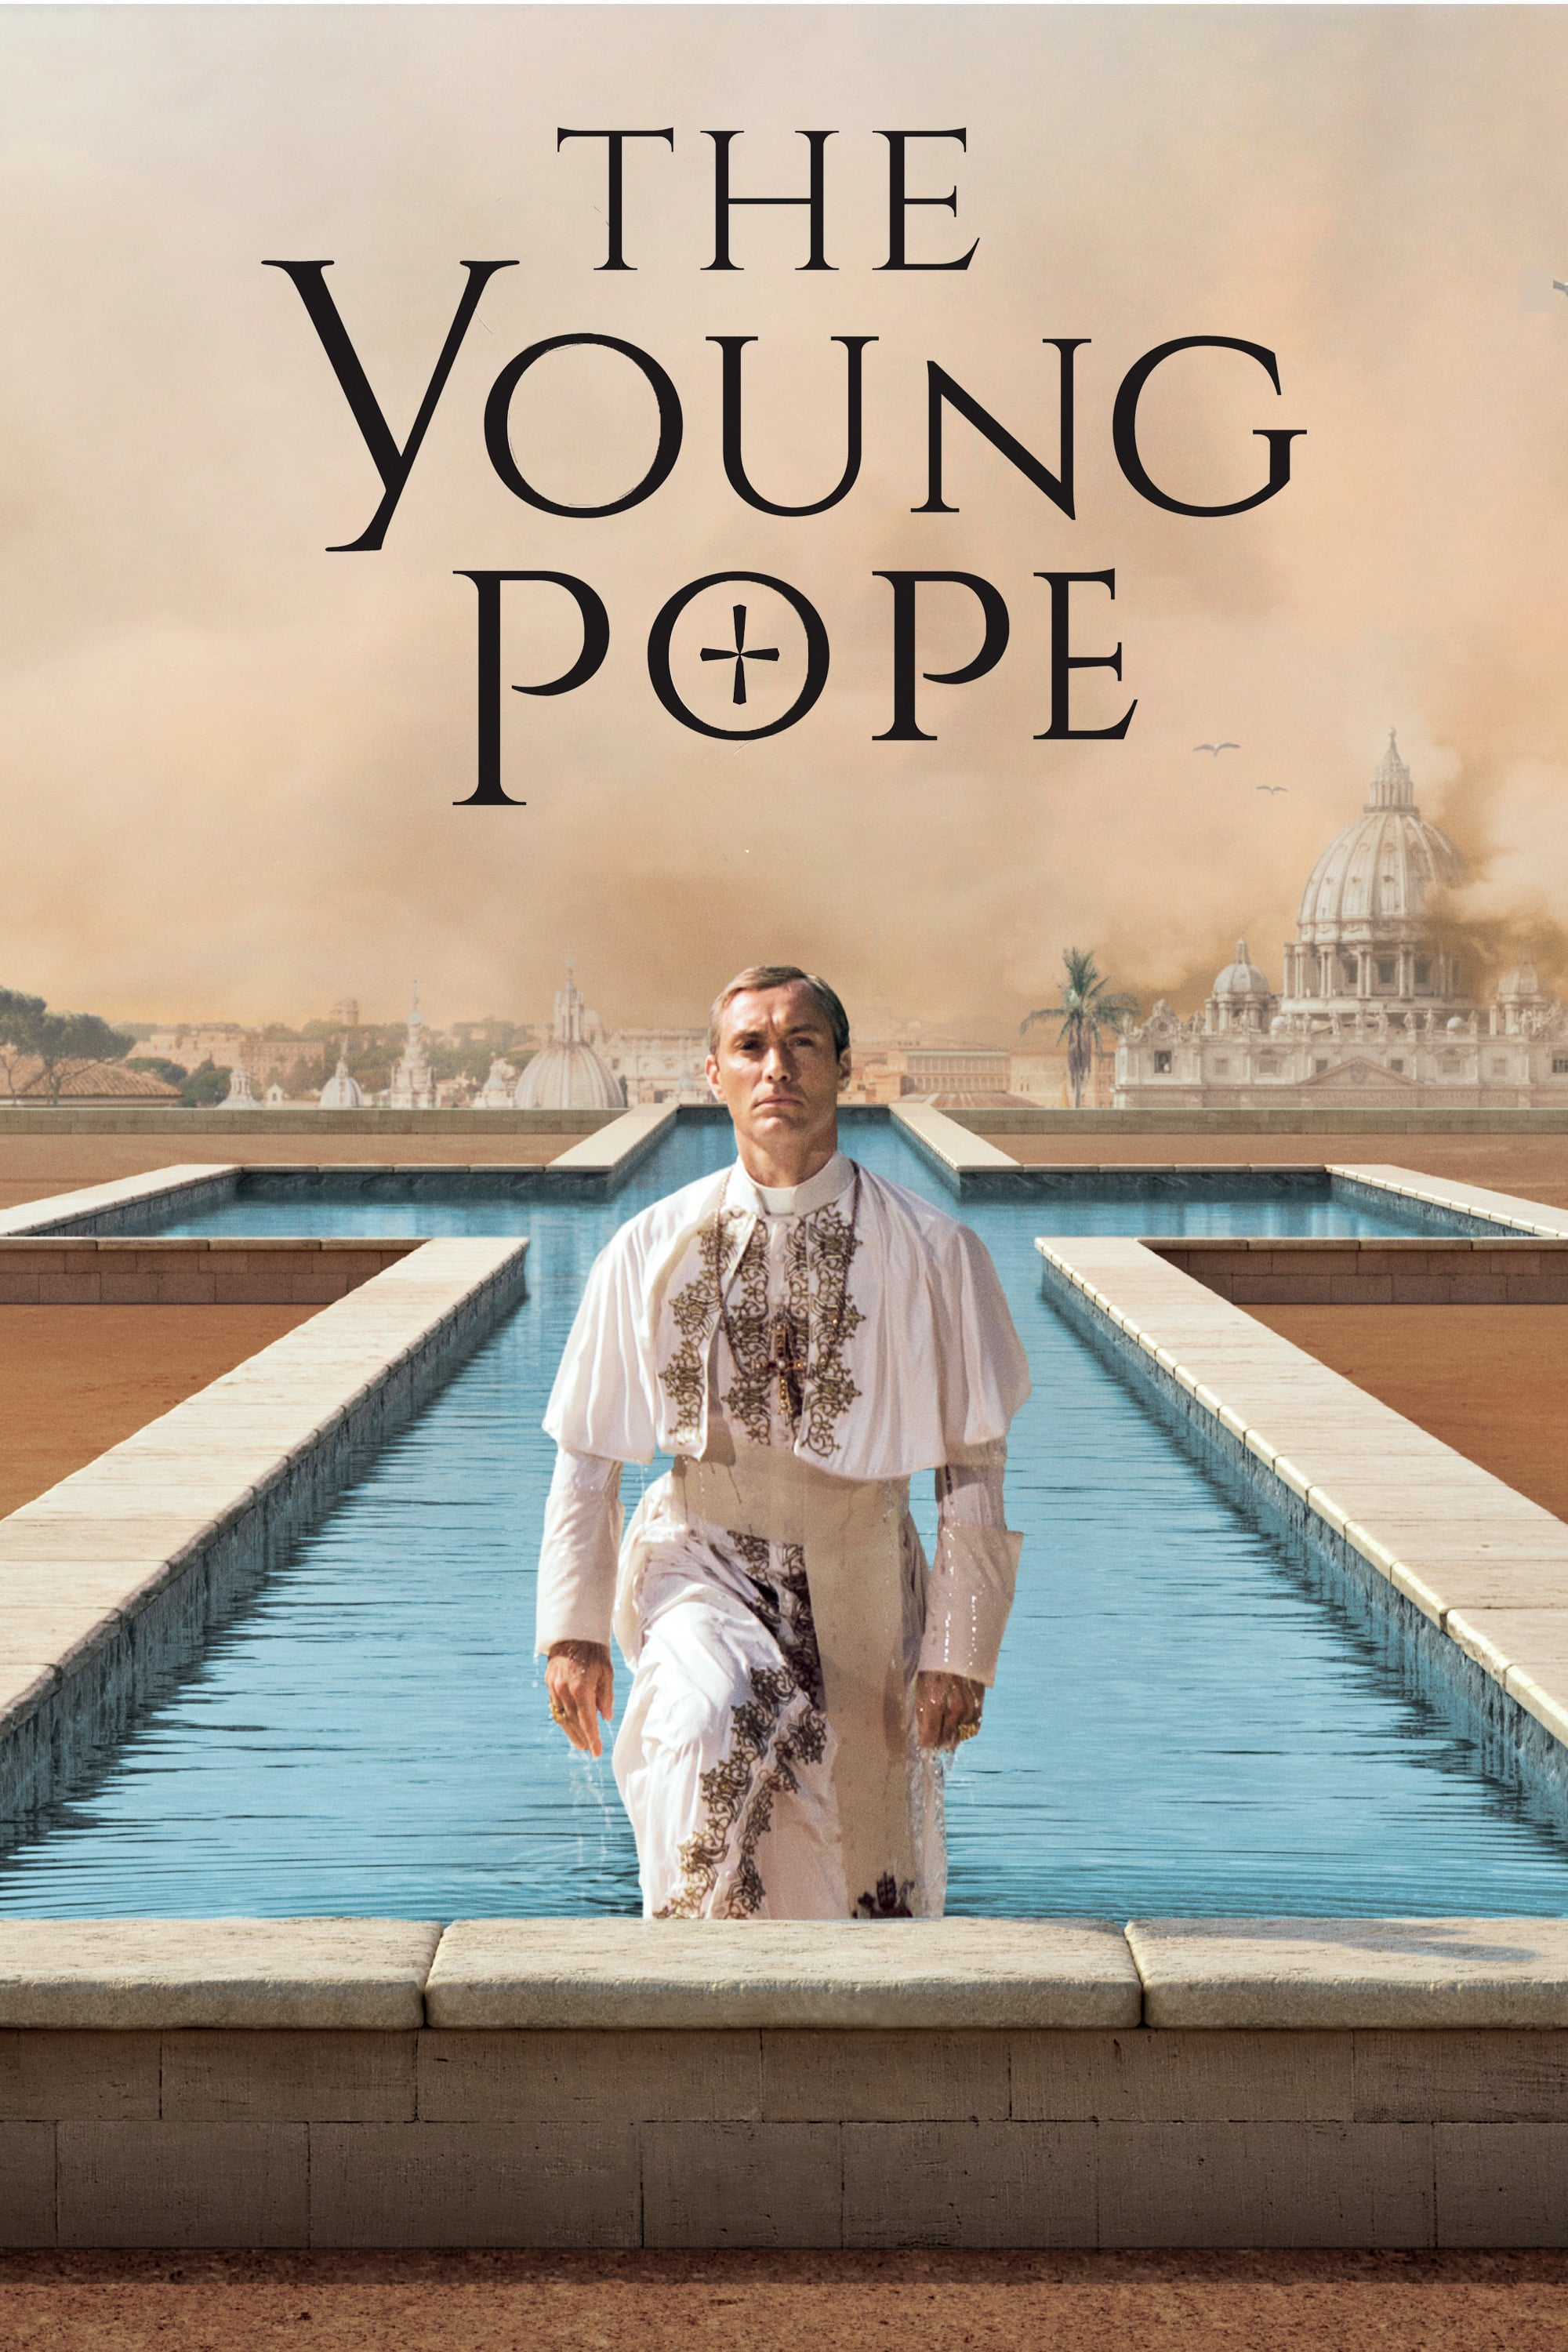 The Young Pope rating